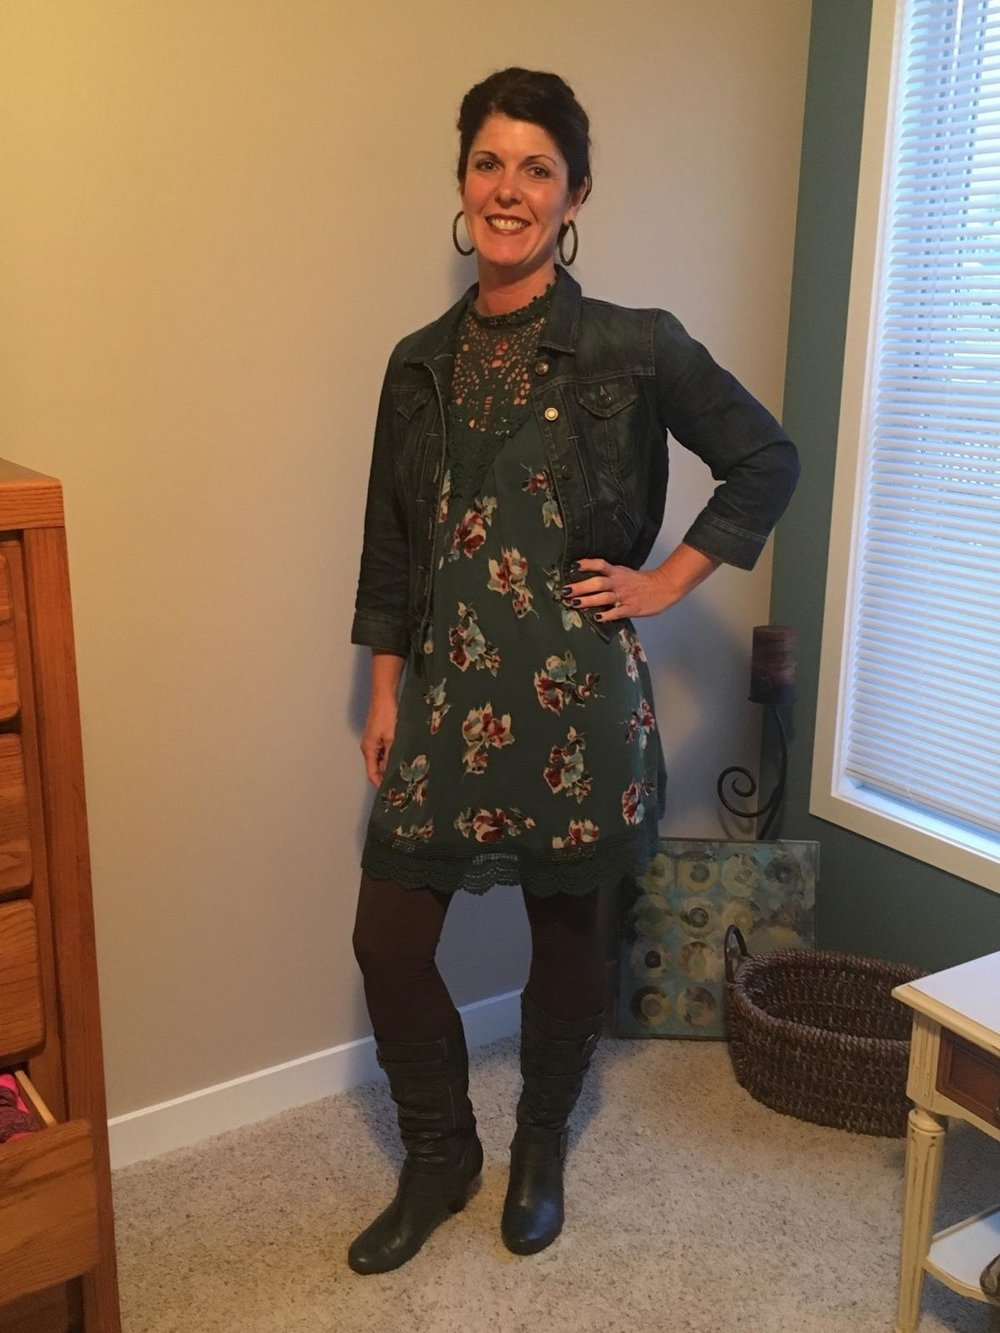 dress layered with jacket, leggings, and boots